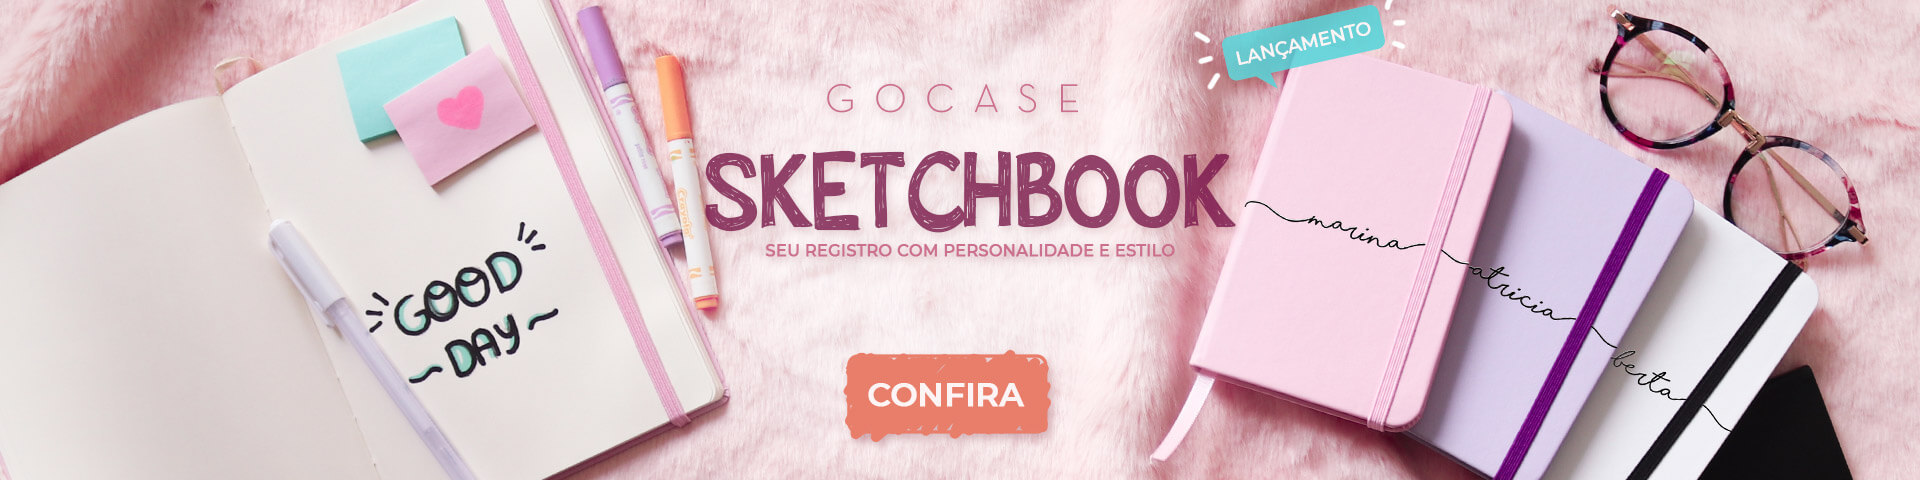 Gocase sketchbook %282%29